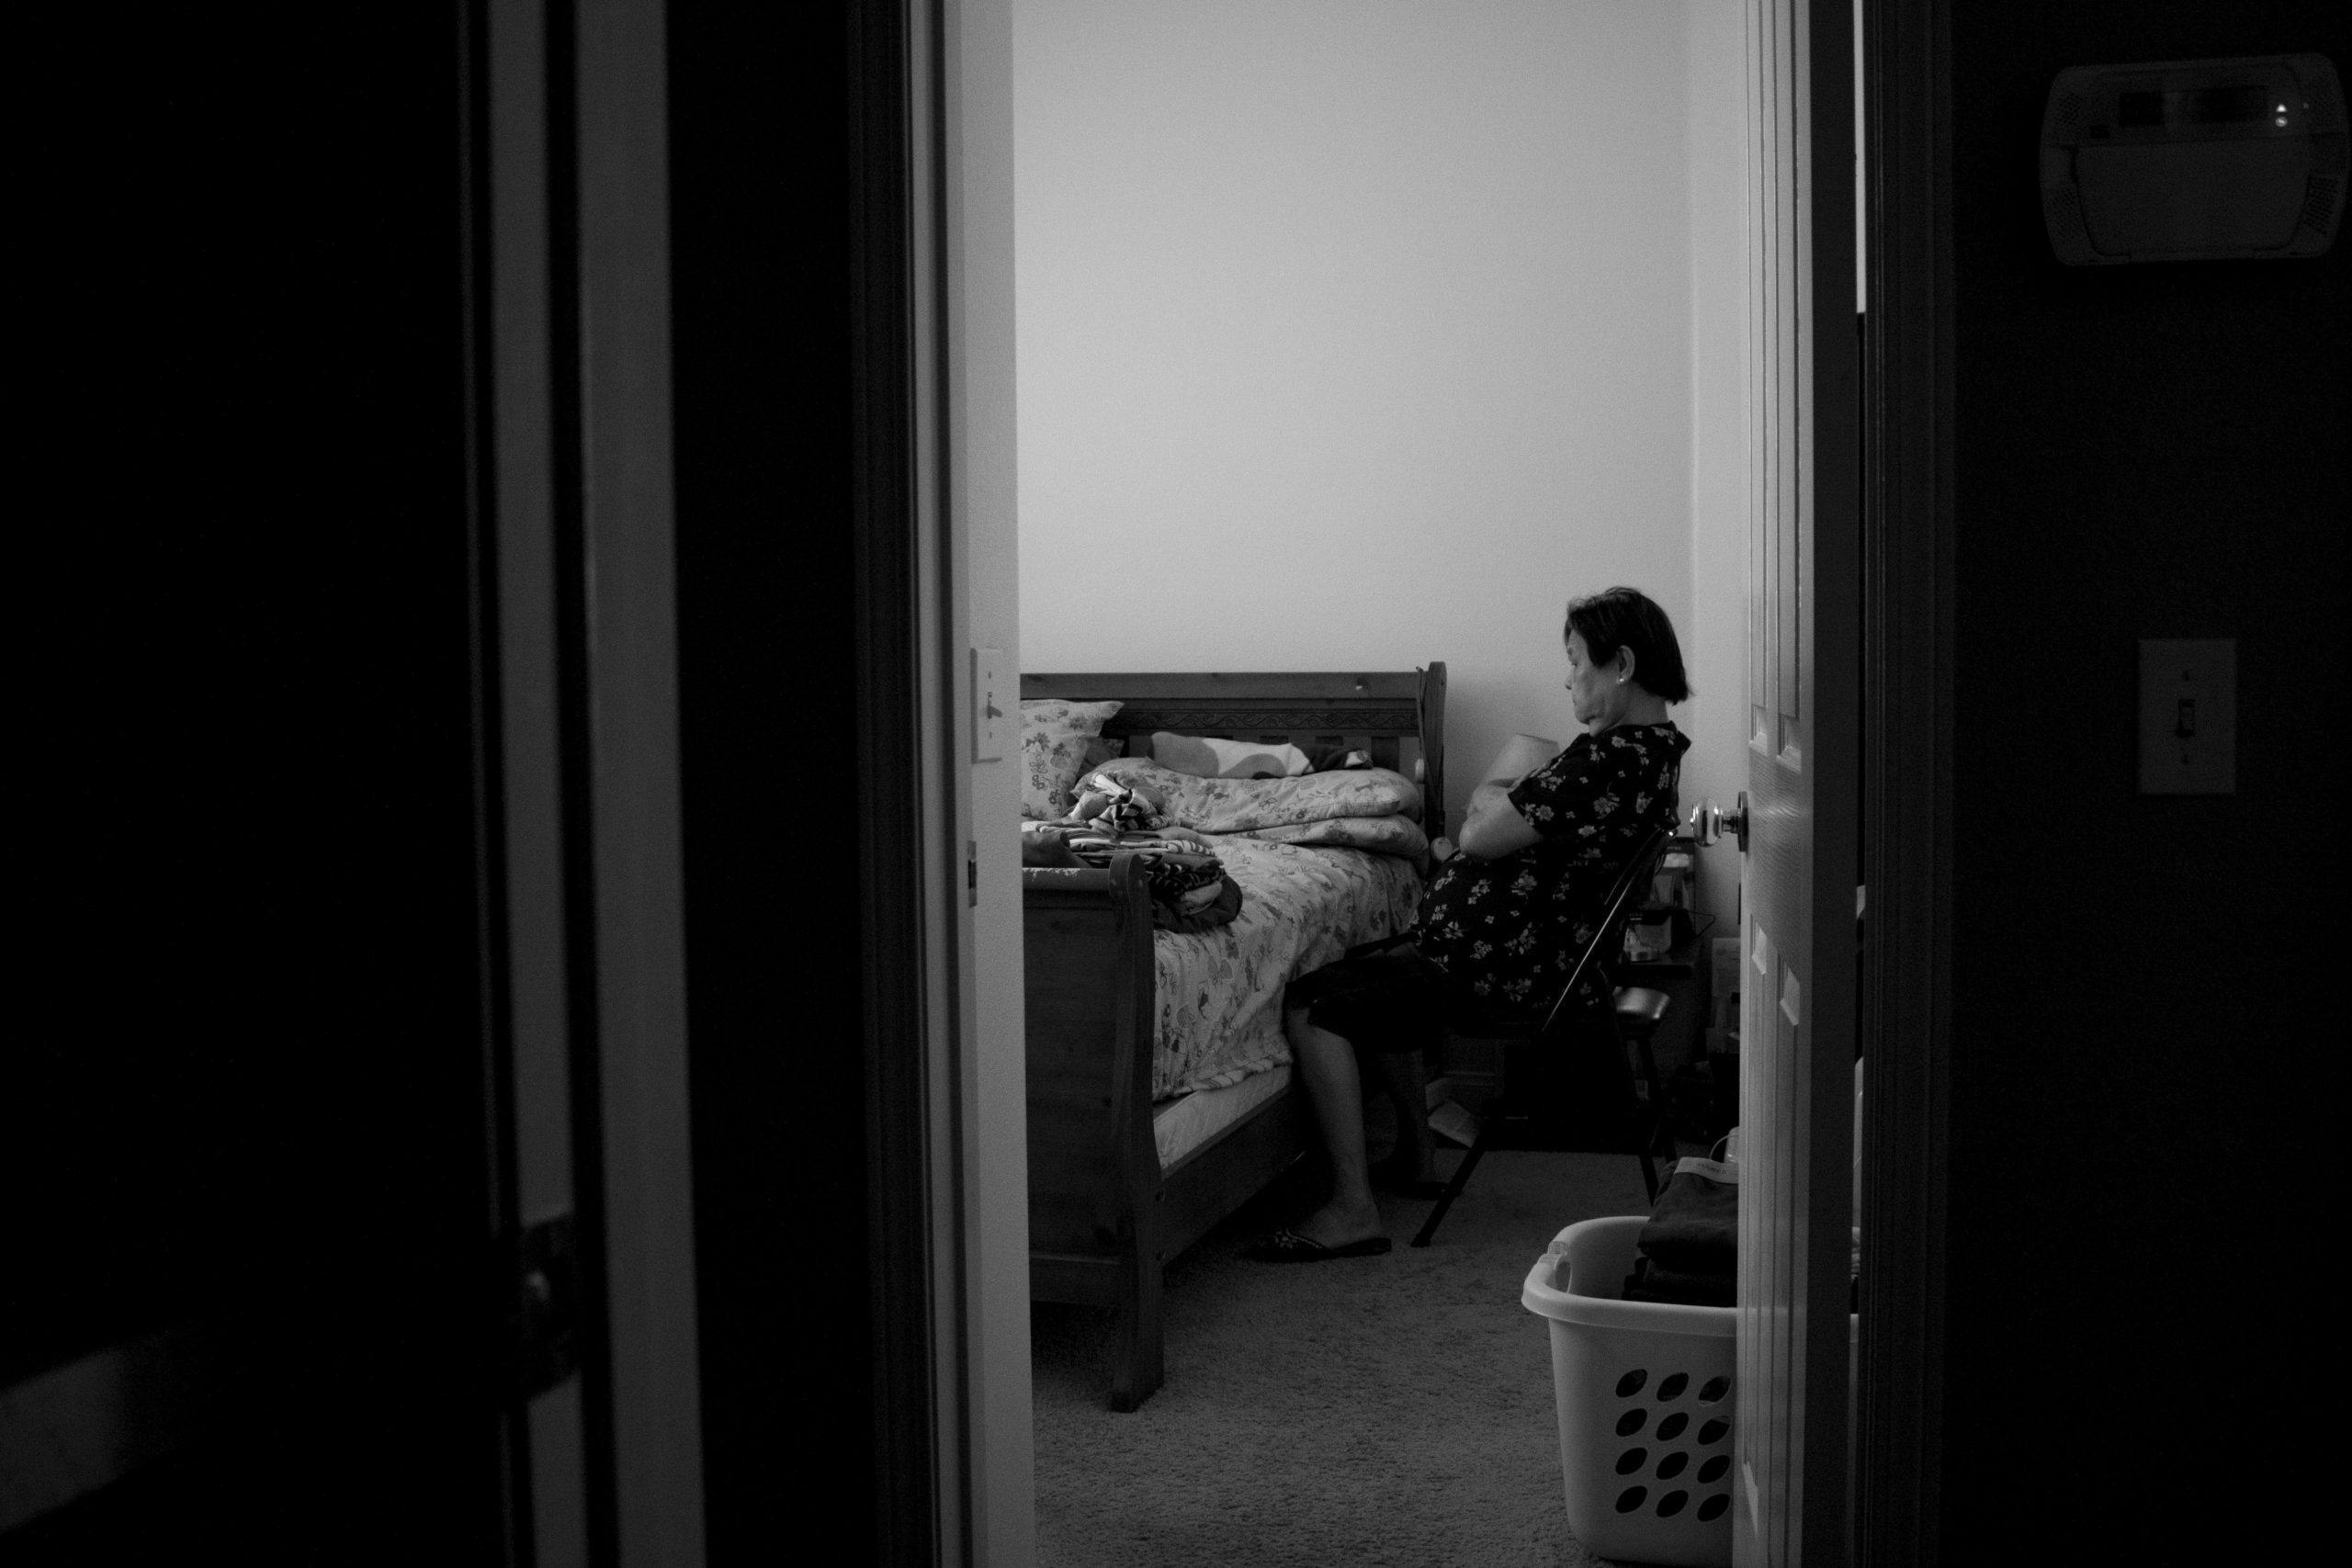 Through an open door, a woman is seen sitting back in a small chair with her arms folded, staring at an empty bed.